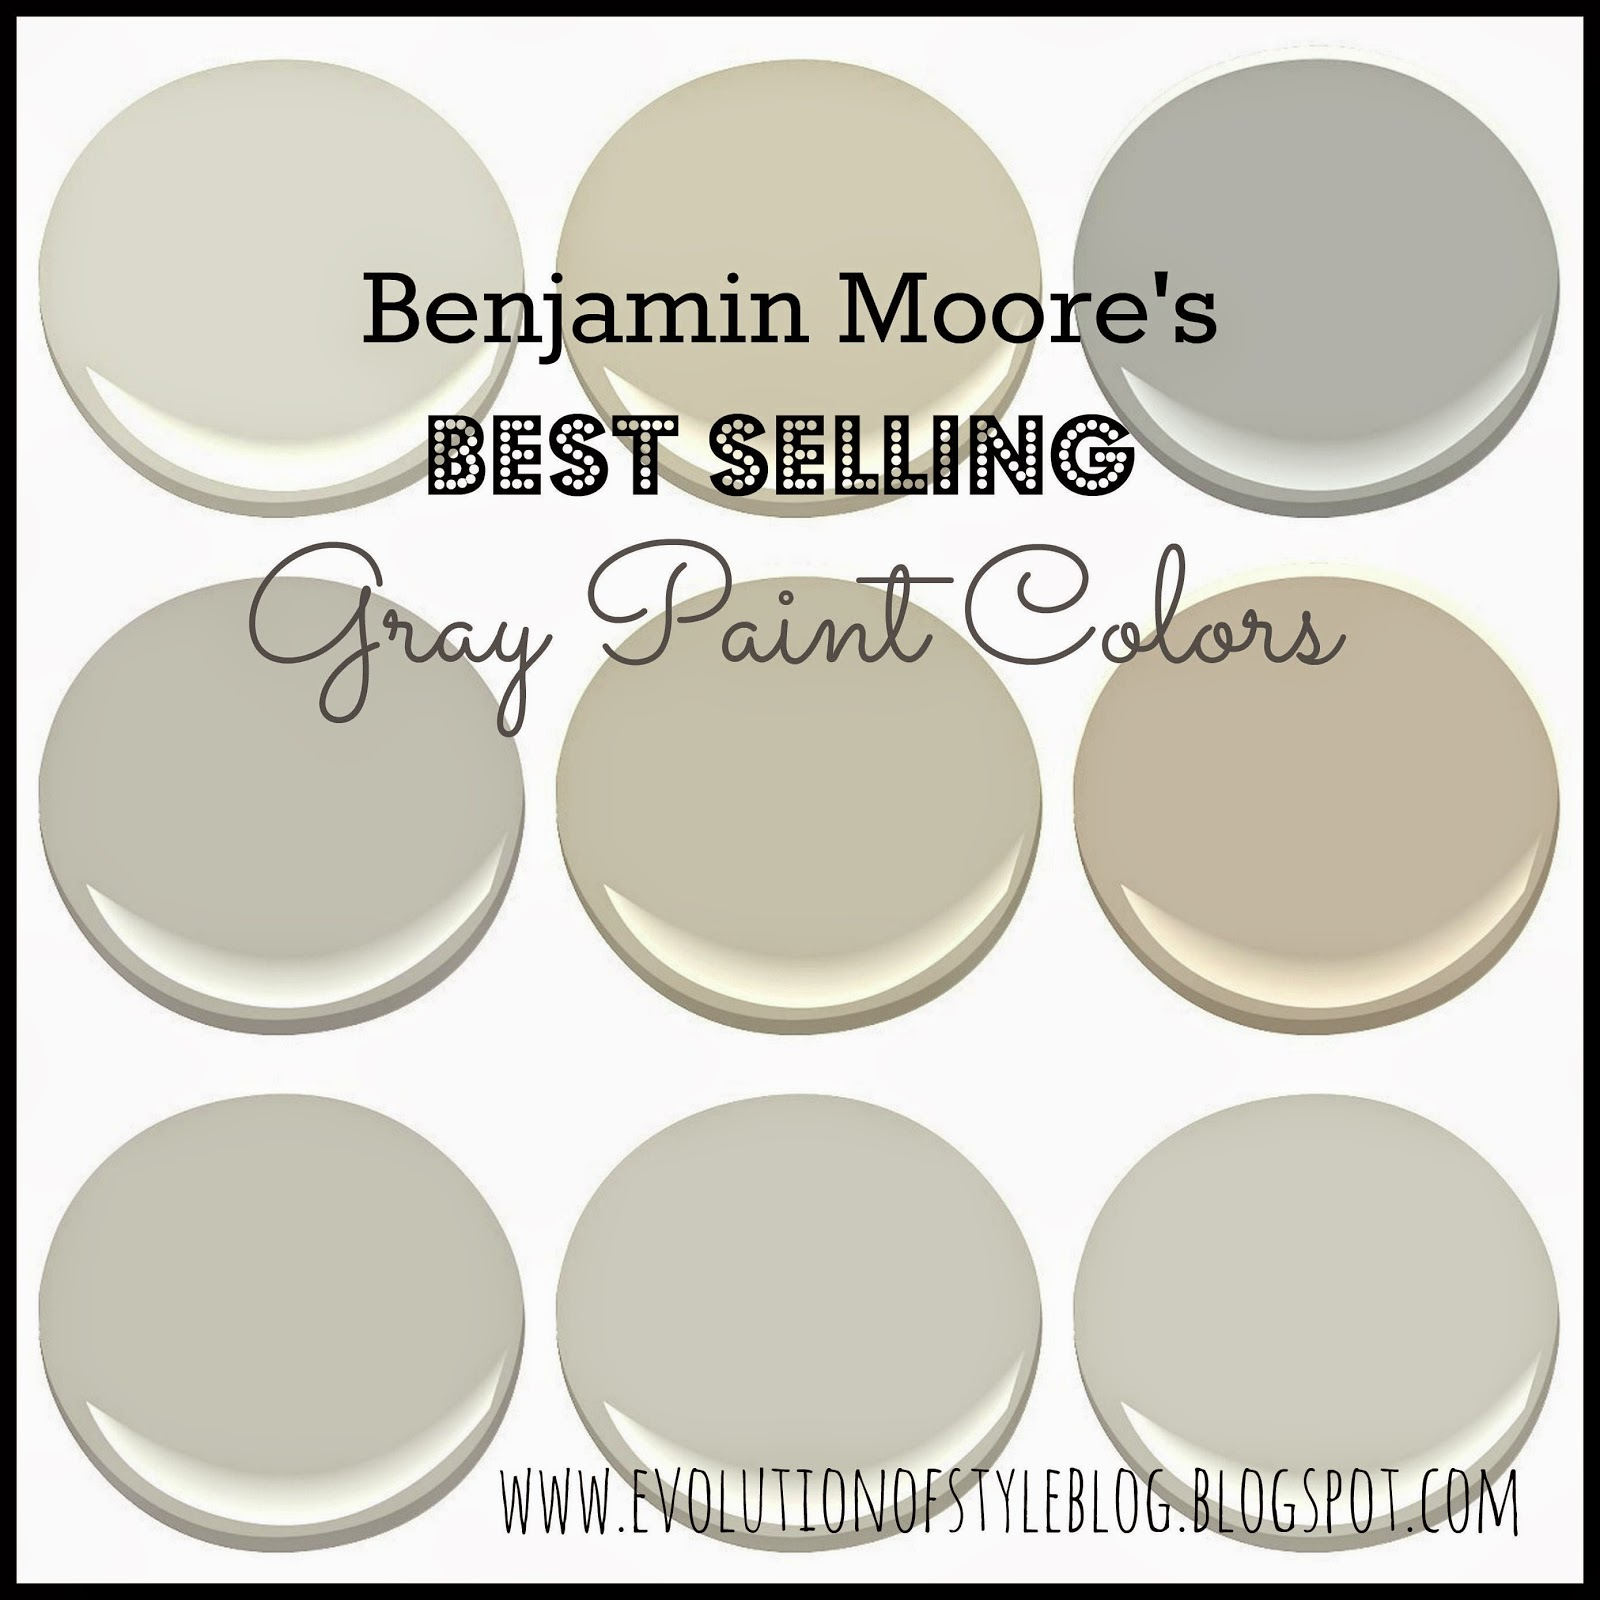 Most Popular Blue Gray Paint Colors Benjamin Moore 39s Best Selling Grays Evolution Of Style